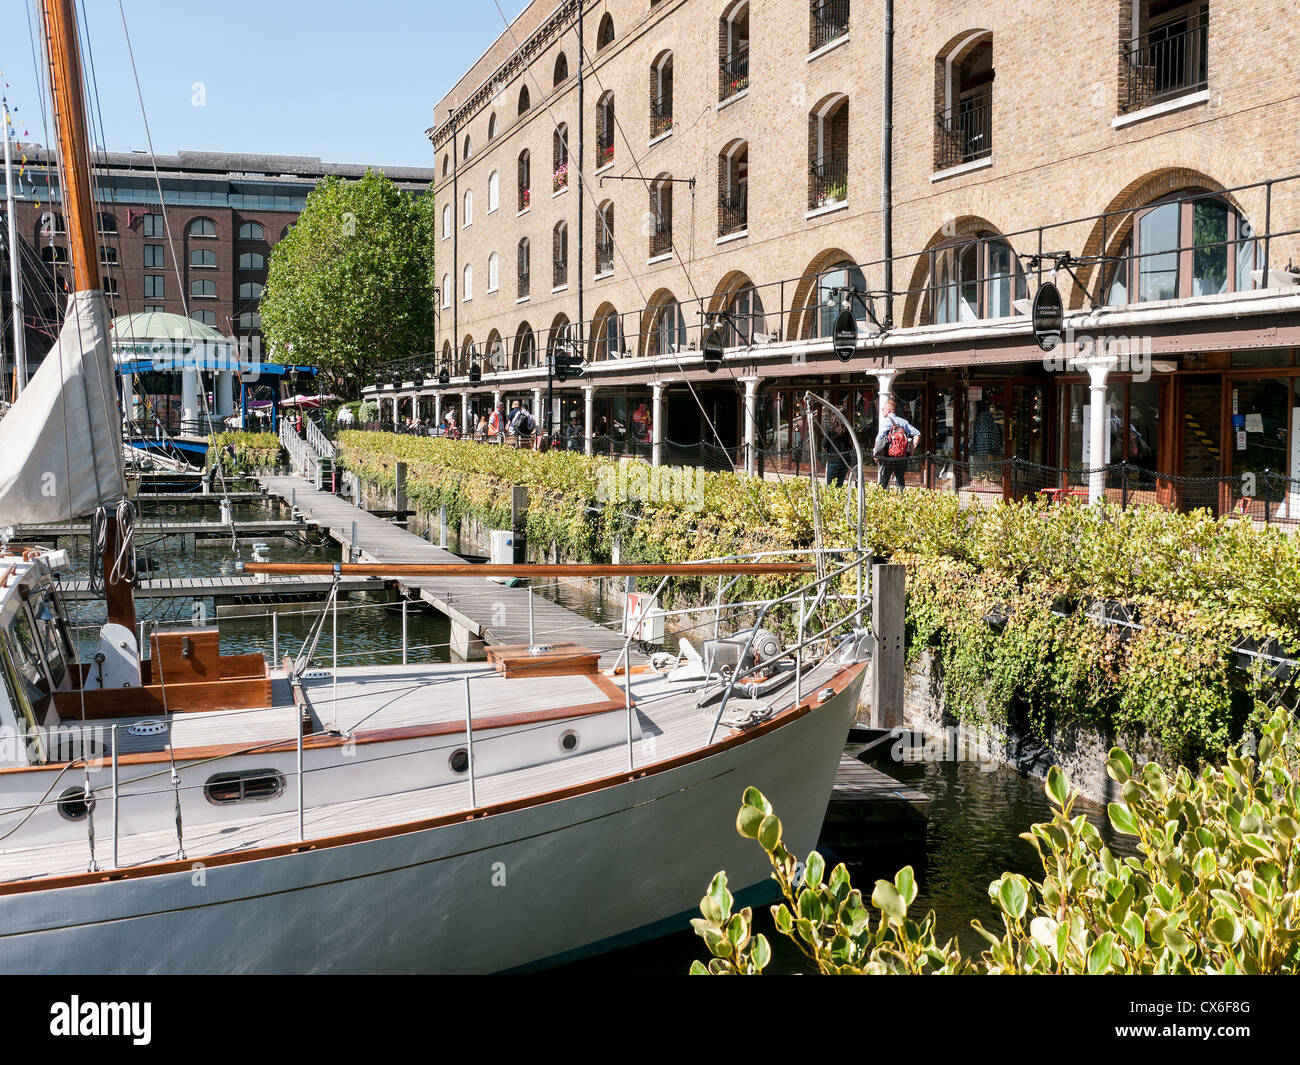 The Marina at St. Katherine Docks, with shops and boutiques in the background, London, UK - Stock Image